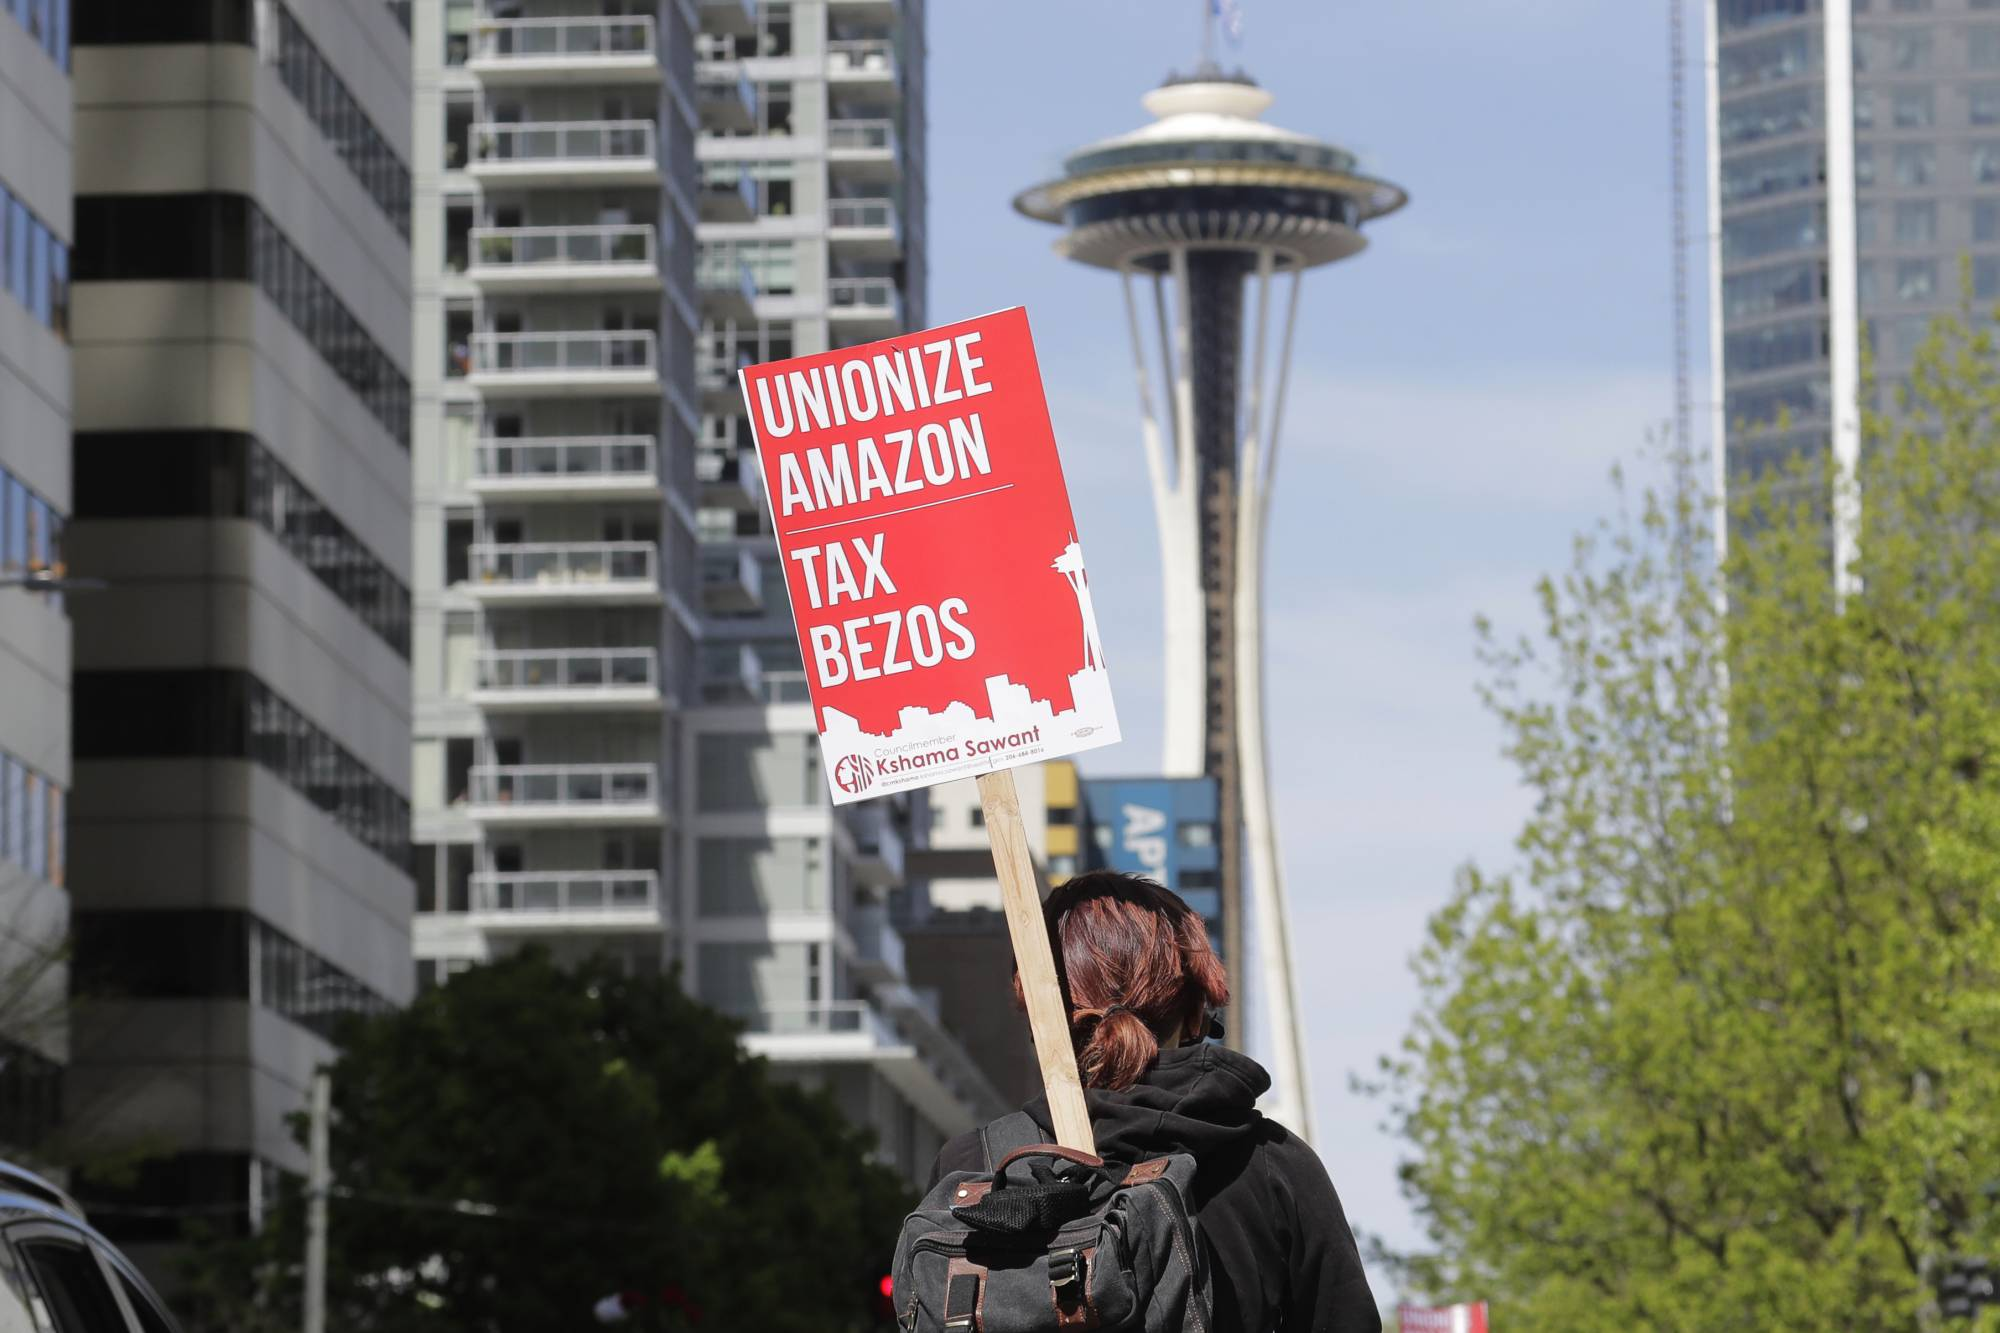 A protester carries a sign that reads 'Unionize Amazon Tax Bezos' during a protest in downtown Seattle on May 1.  | AP